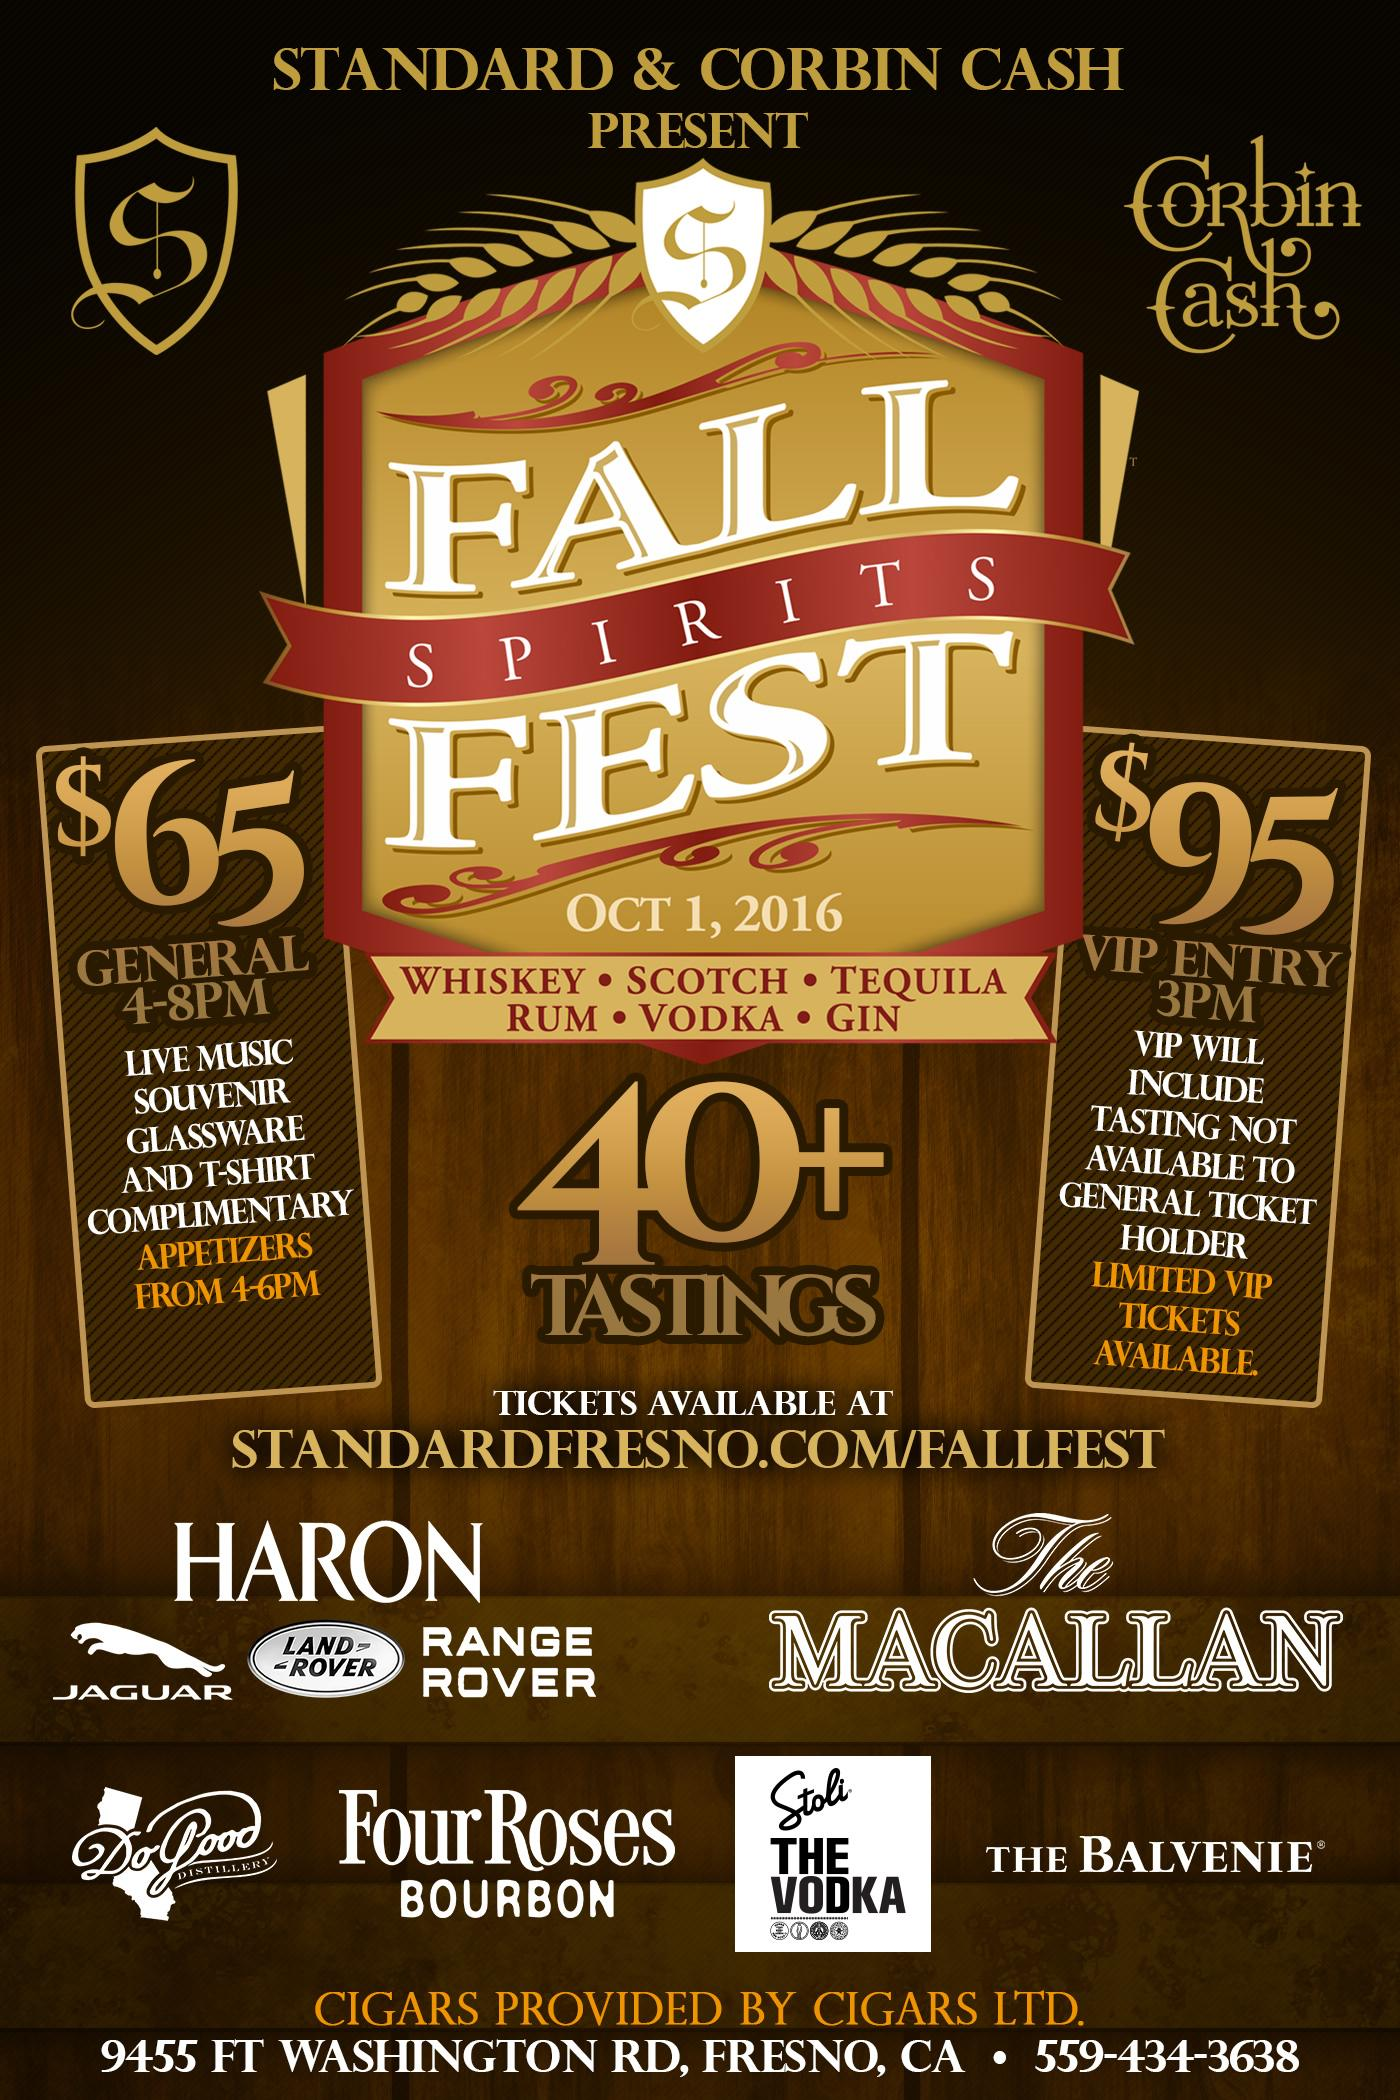 Fall Spirits Fest Tickets Sat Oct 1 2016 At 4 00 Pm Eventbrite